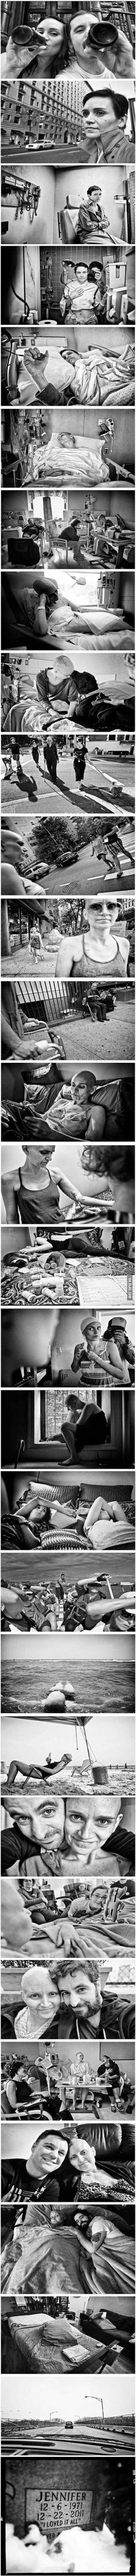 Photographer takes a picture every stage his girlfriend went through in her battle with cancer